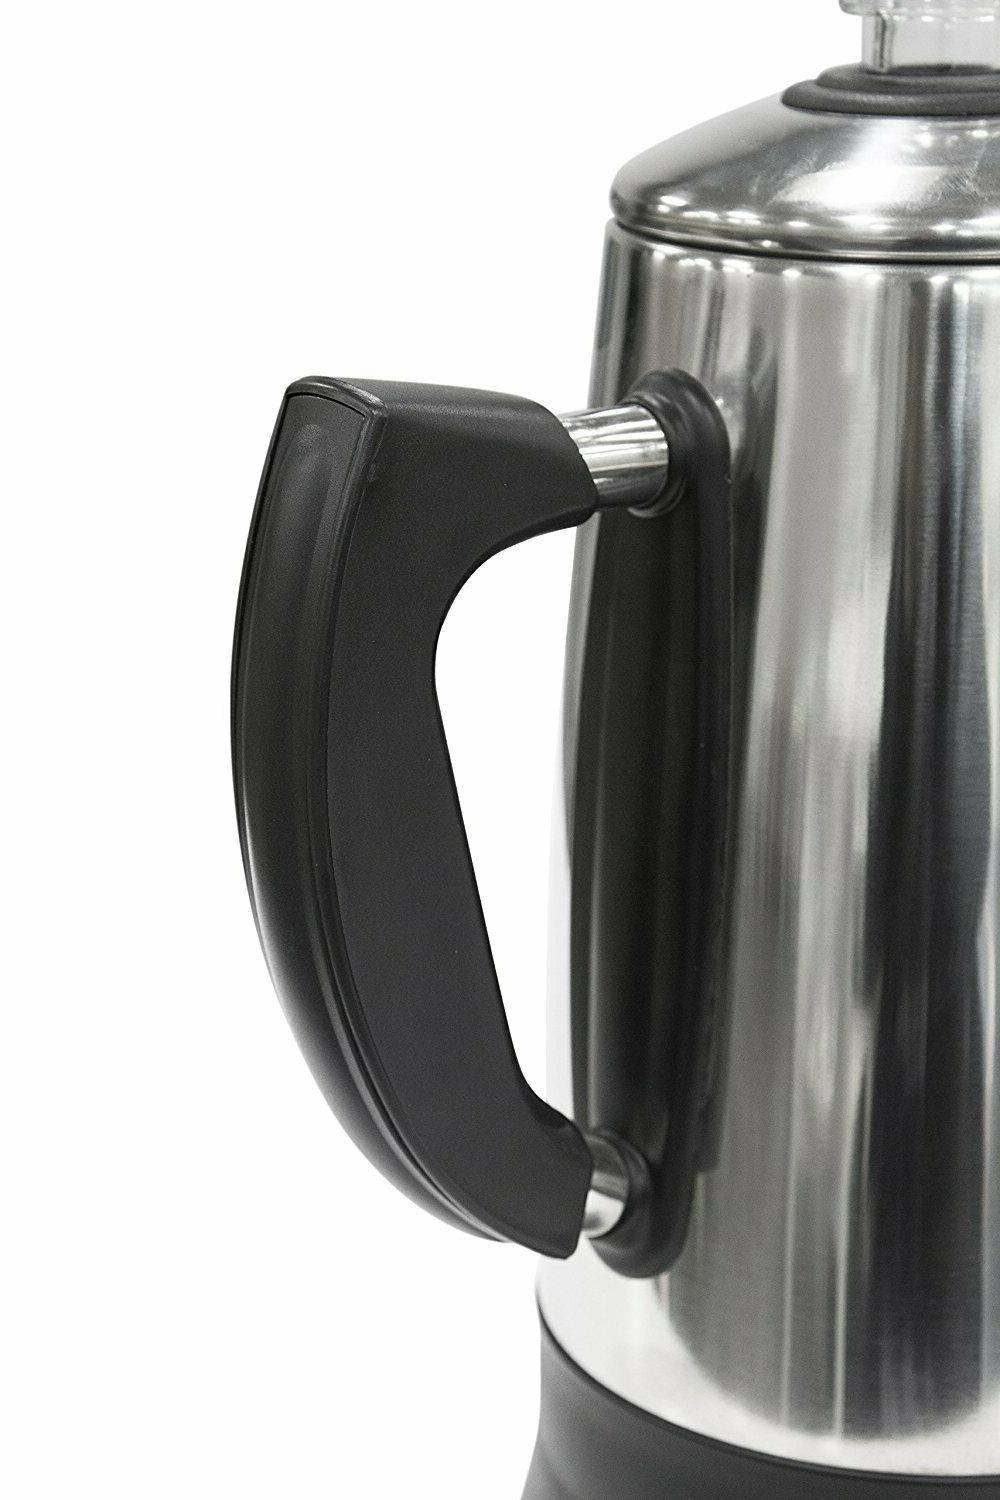 Maxi Matic 12-Cup Stainless Steel/Black Vintage